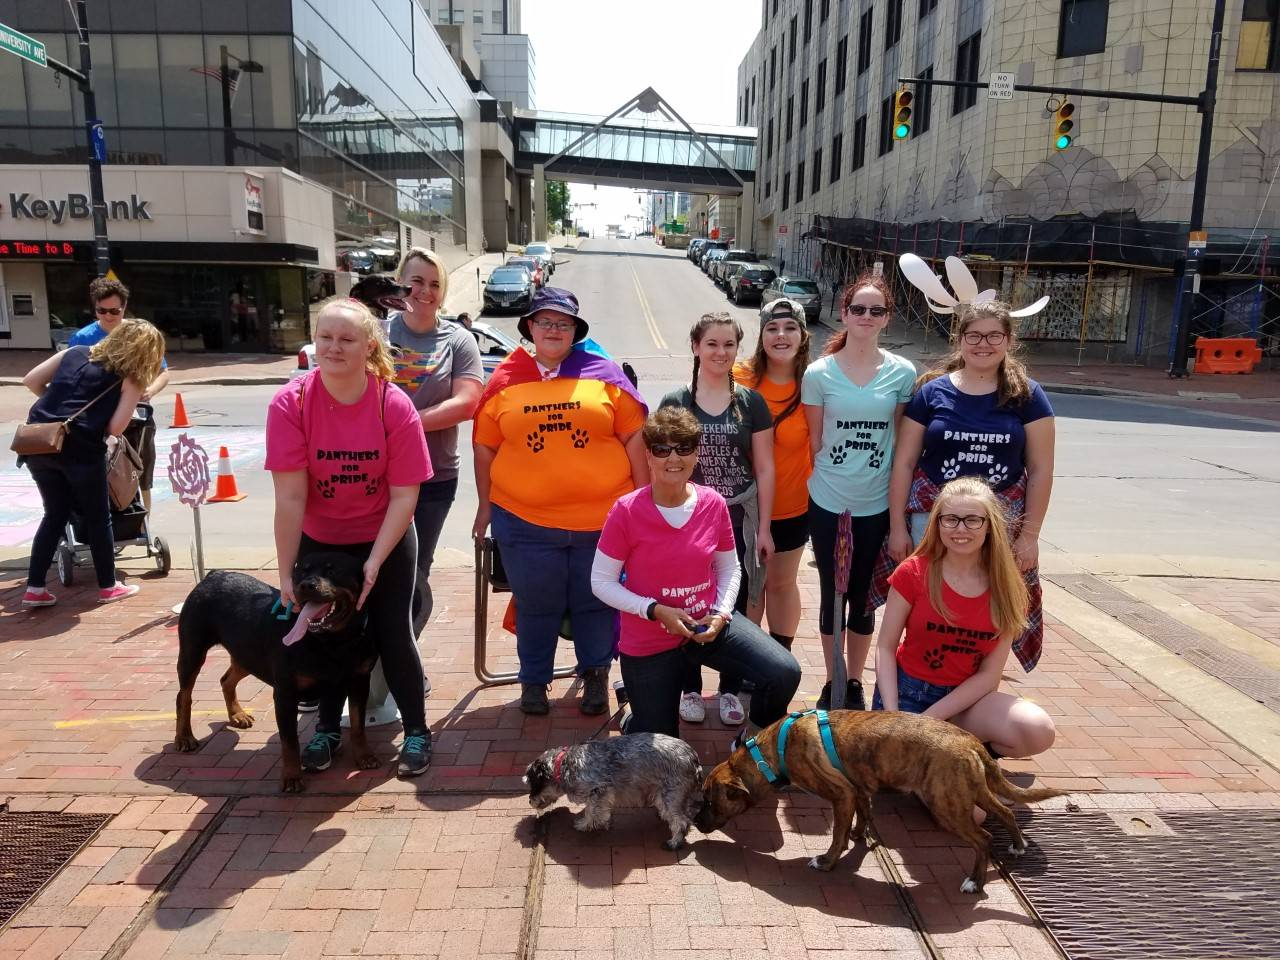 GSA Panthers for Pride Raises Money for Bark in the Park